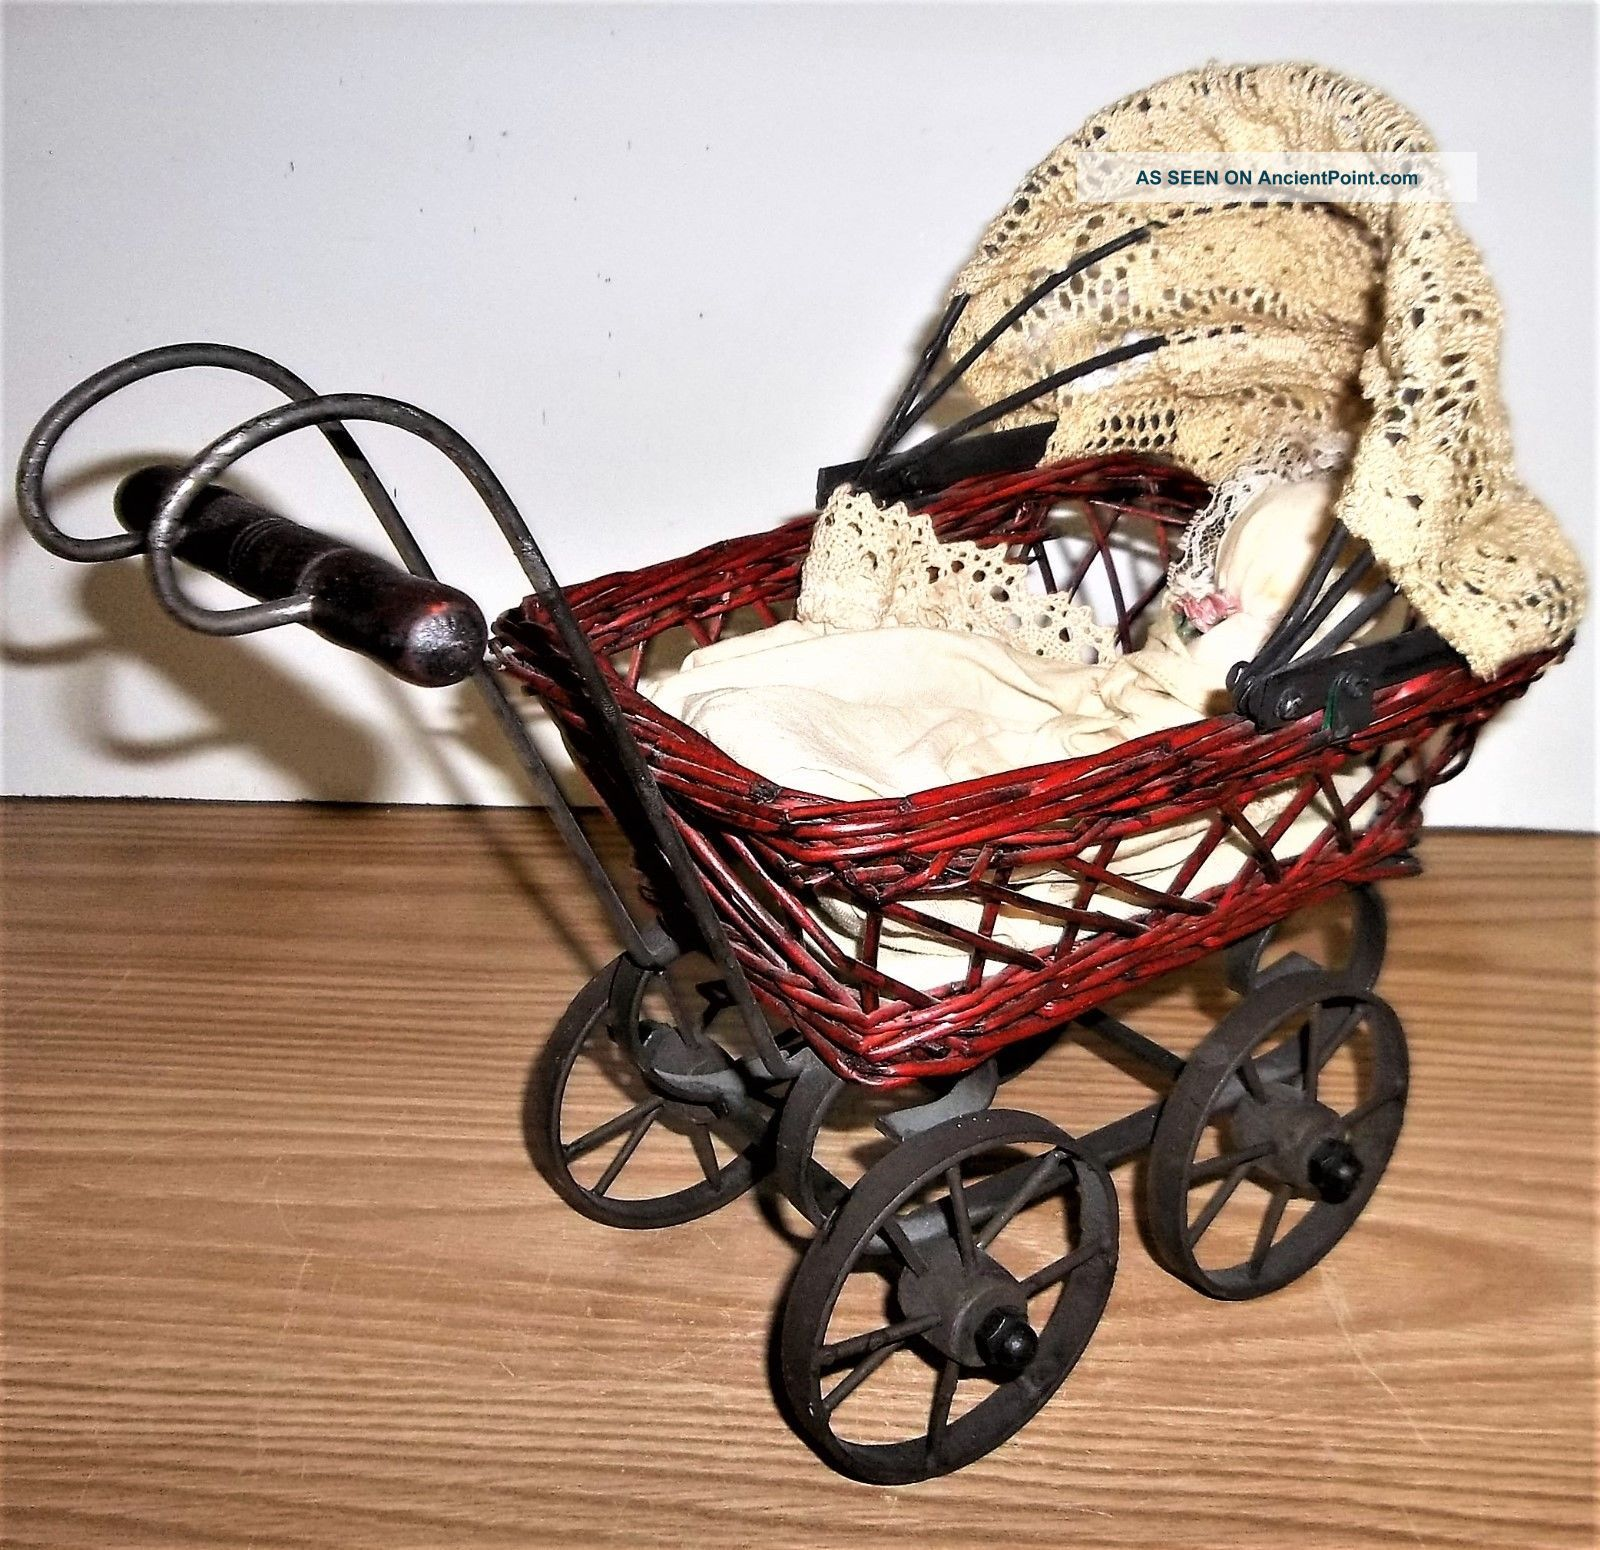 Vintage Miniature Rattan Wicker Metal Carriage Buggy,  Doll Baby Carriages & Buggies photo